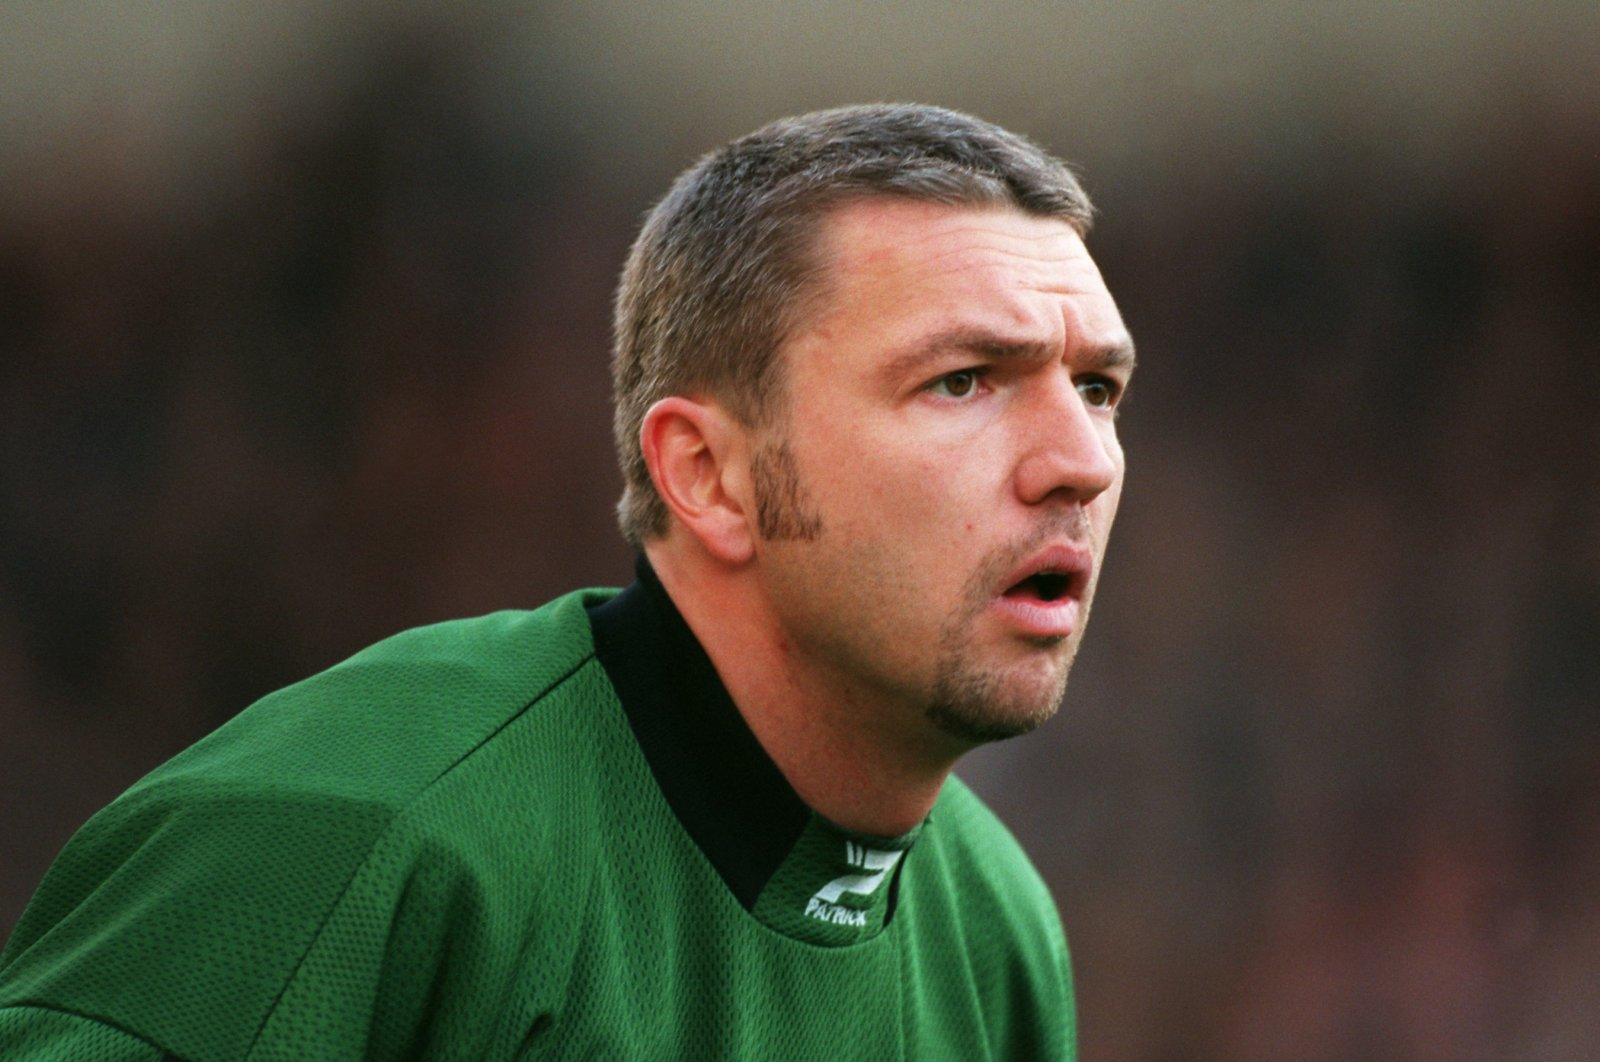 West Bromwich Albion goalkeeper Alan Miller is seen during a League One football match between West Bromwich Albion and Wolverhampton Wanderers at The Hawthorns, in West Bromwich, England, Nov. 29, 1998. (PA via Reuters)